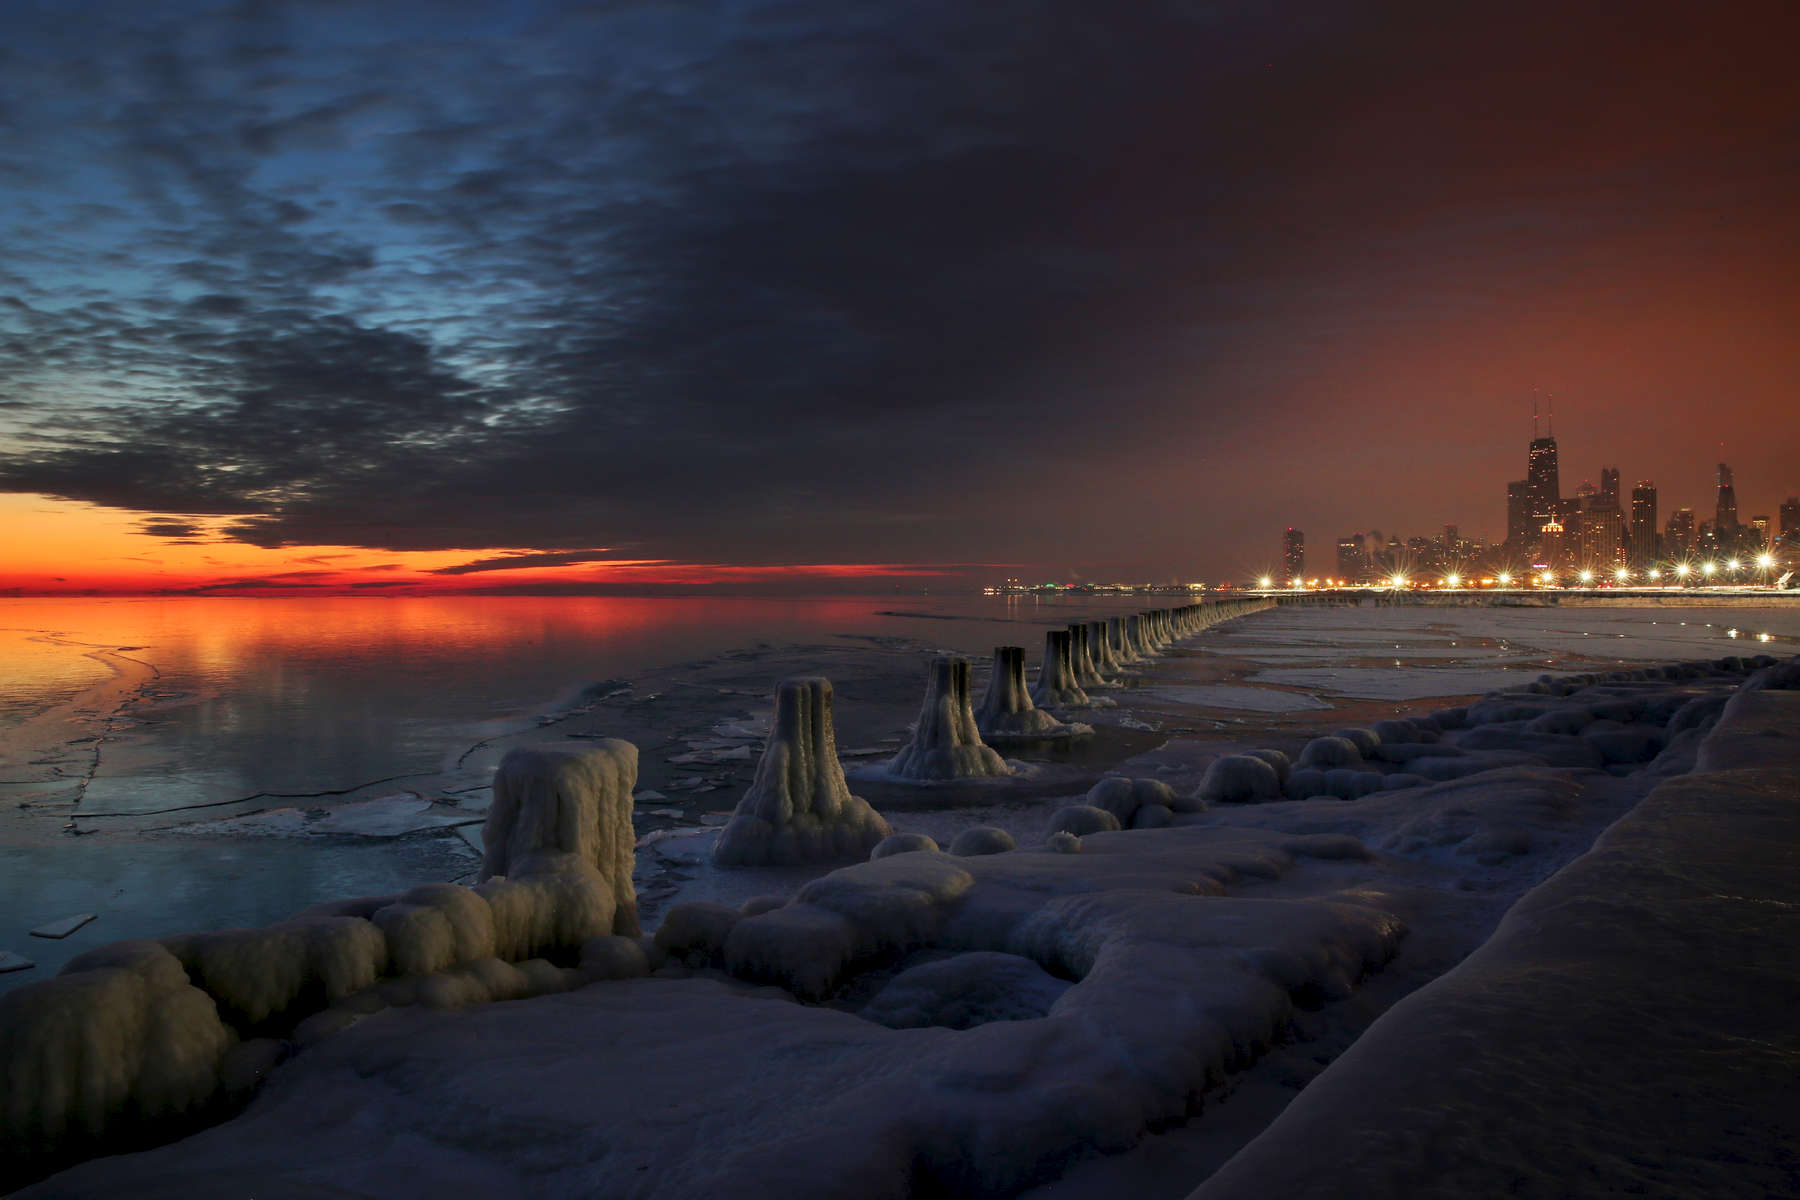 The sun starts to break over the horizon as the city skyline glows with artifical light in the early morning hours at the Fullerton Street Beach along the frozen shore of Lake Michigan in Chicago.